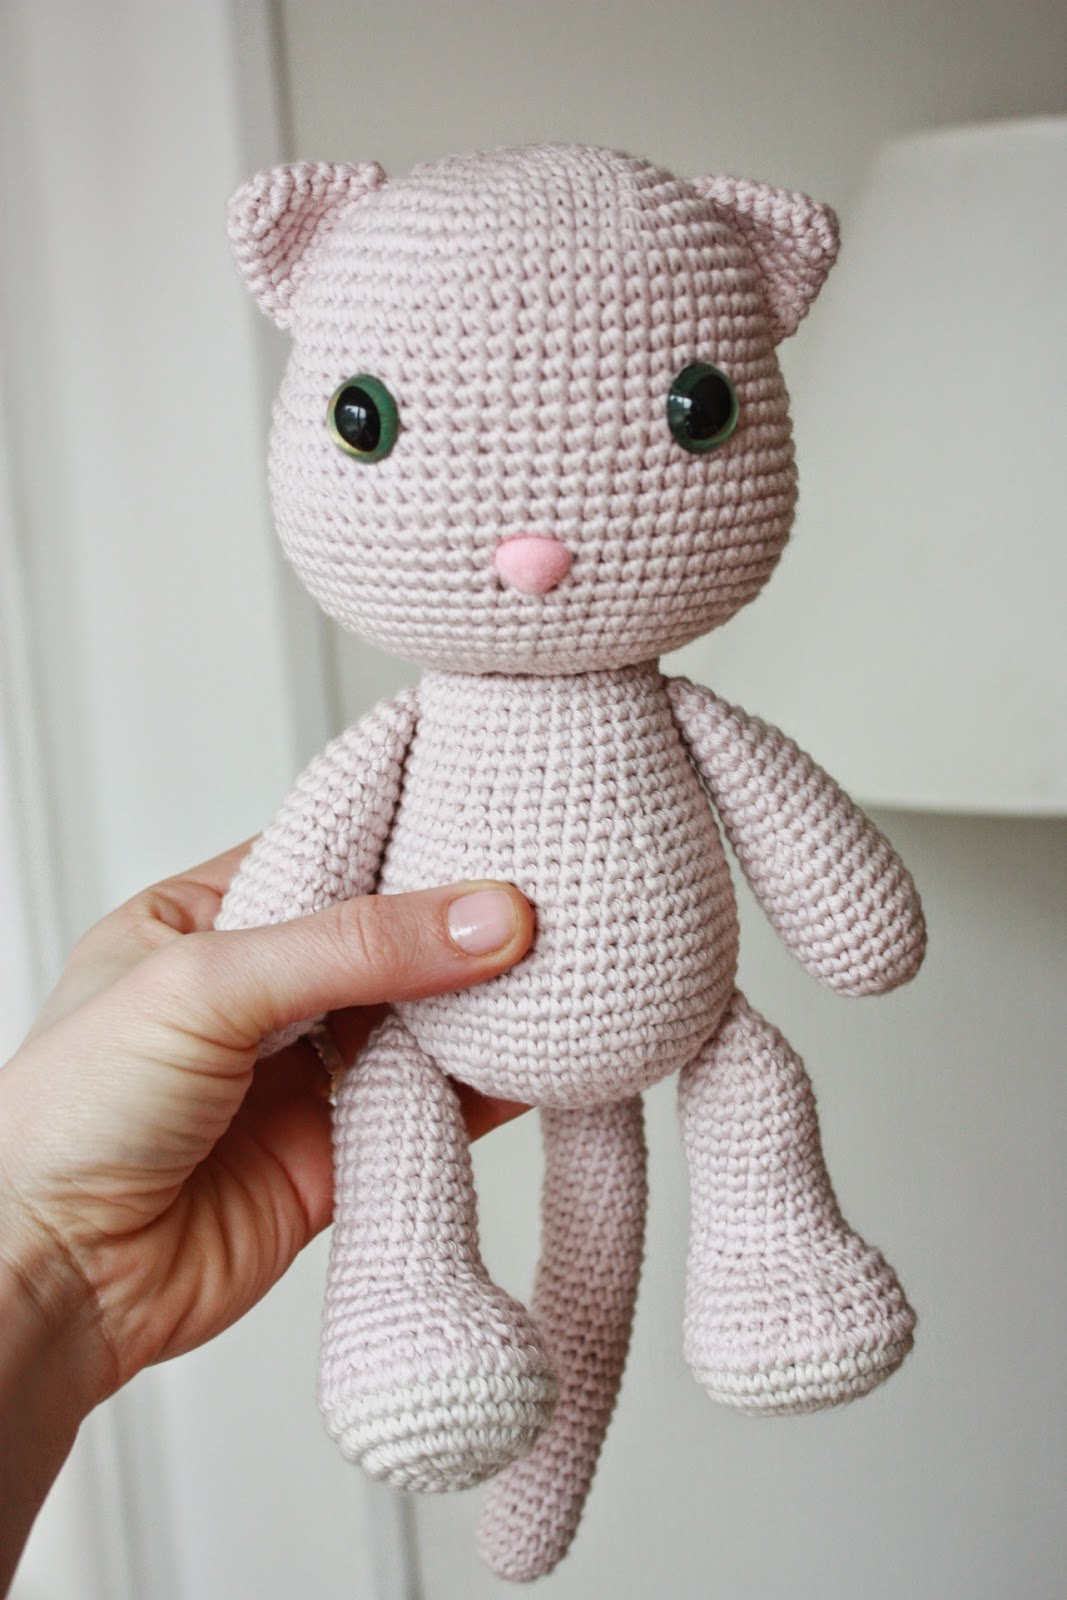 Free Little Kitty Cat Amigurumi Crochet Pattern And Tutorial : HAPPYAMIGURUMI: A New Pattern out now: Amigurumi Cat Pattern